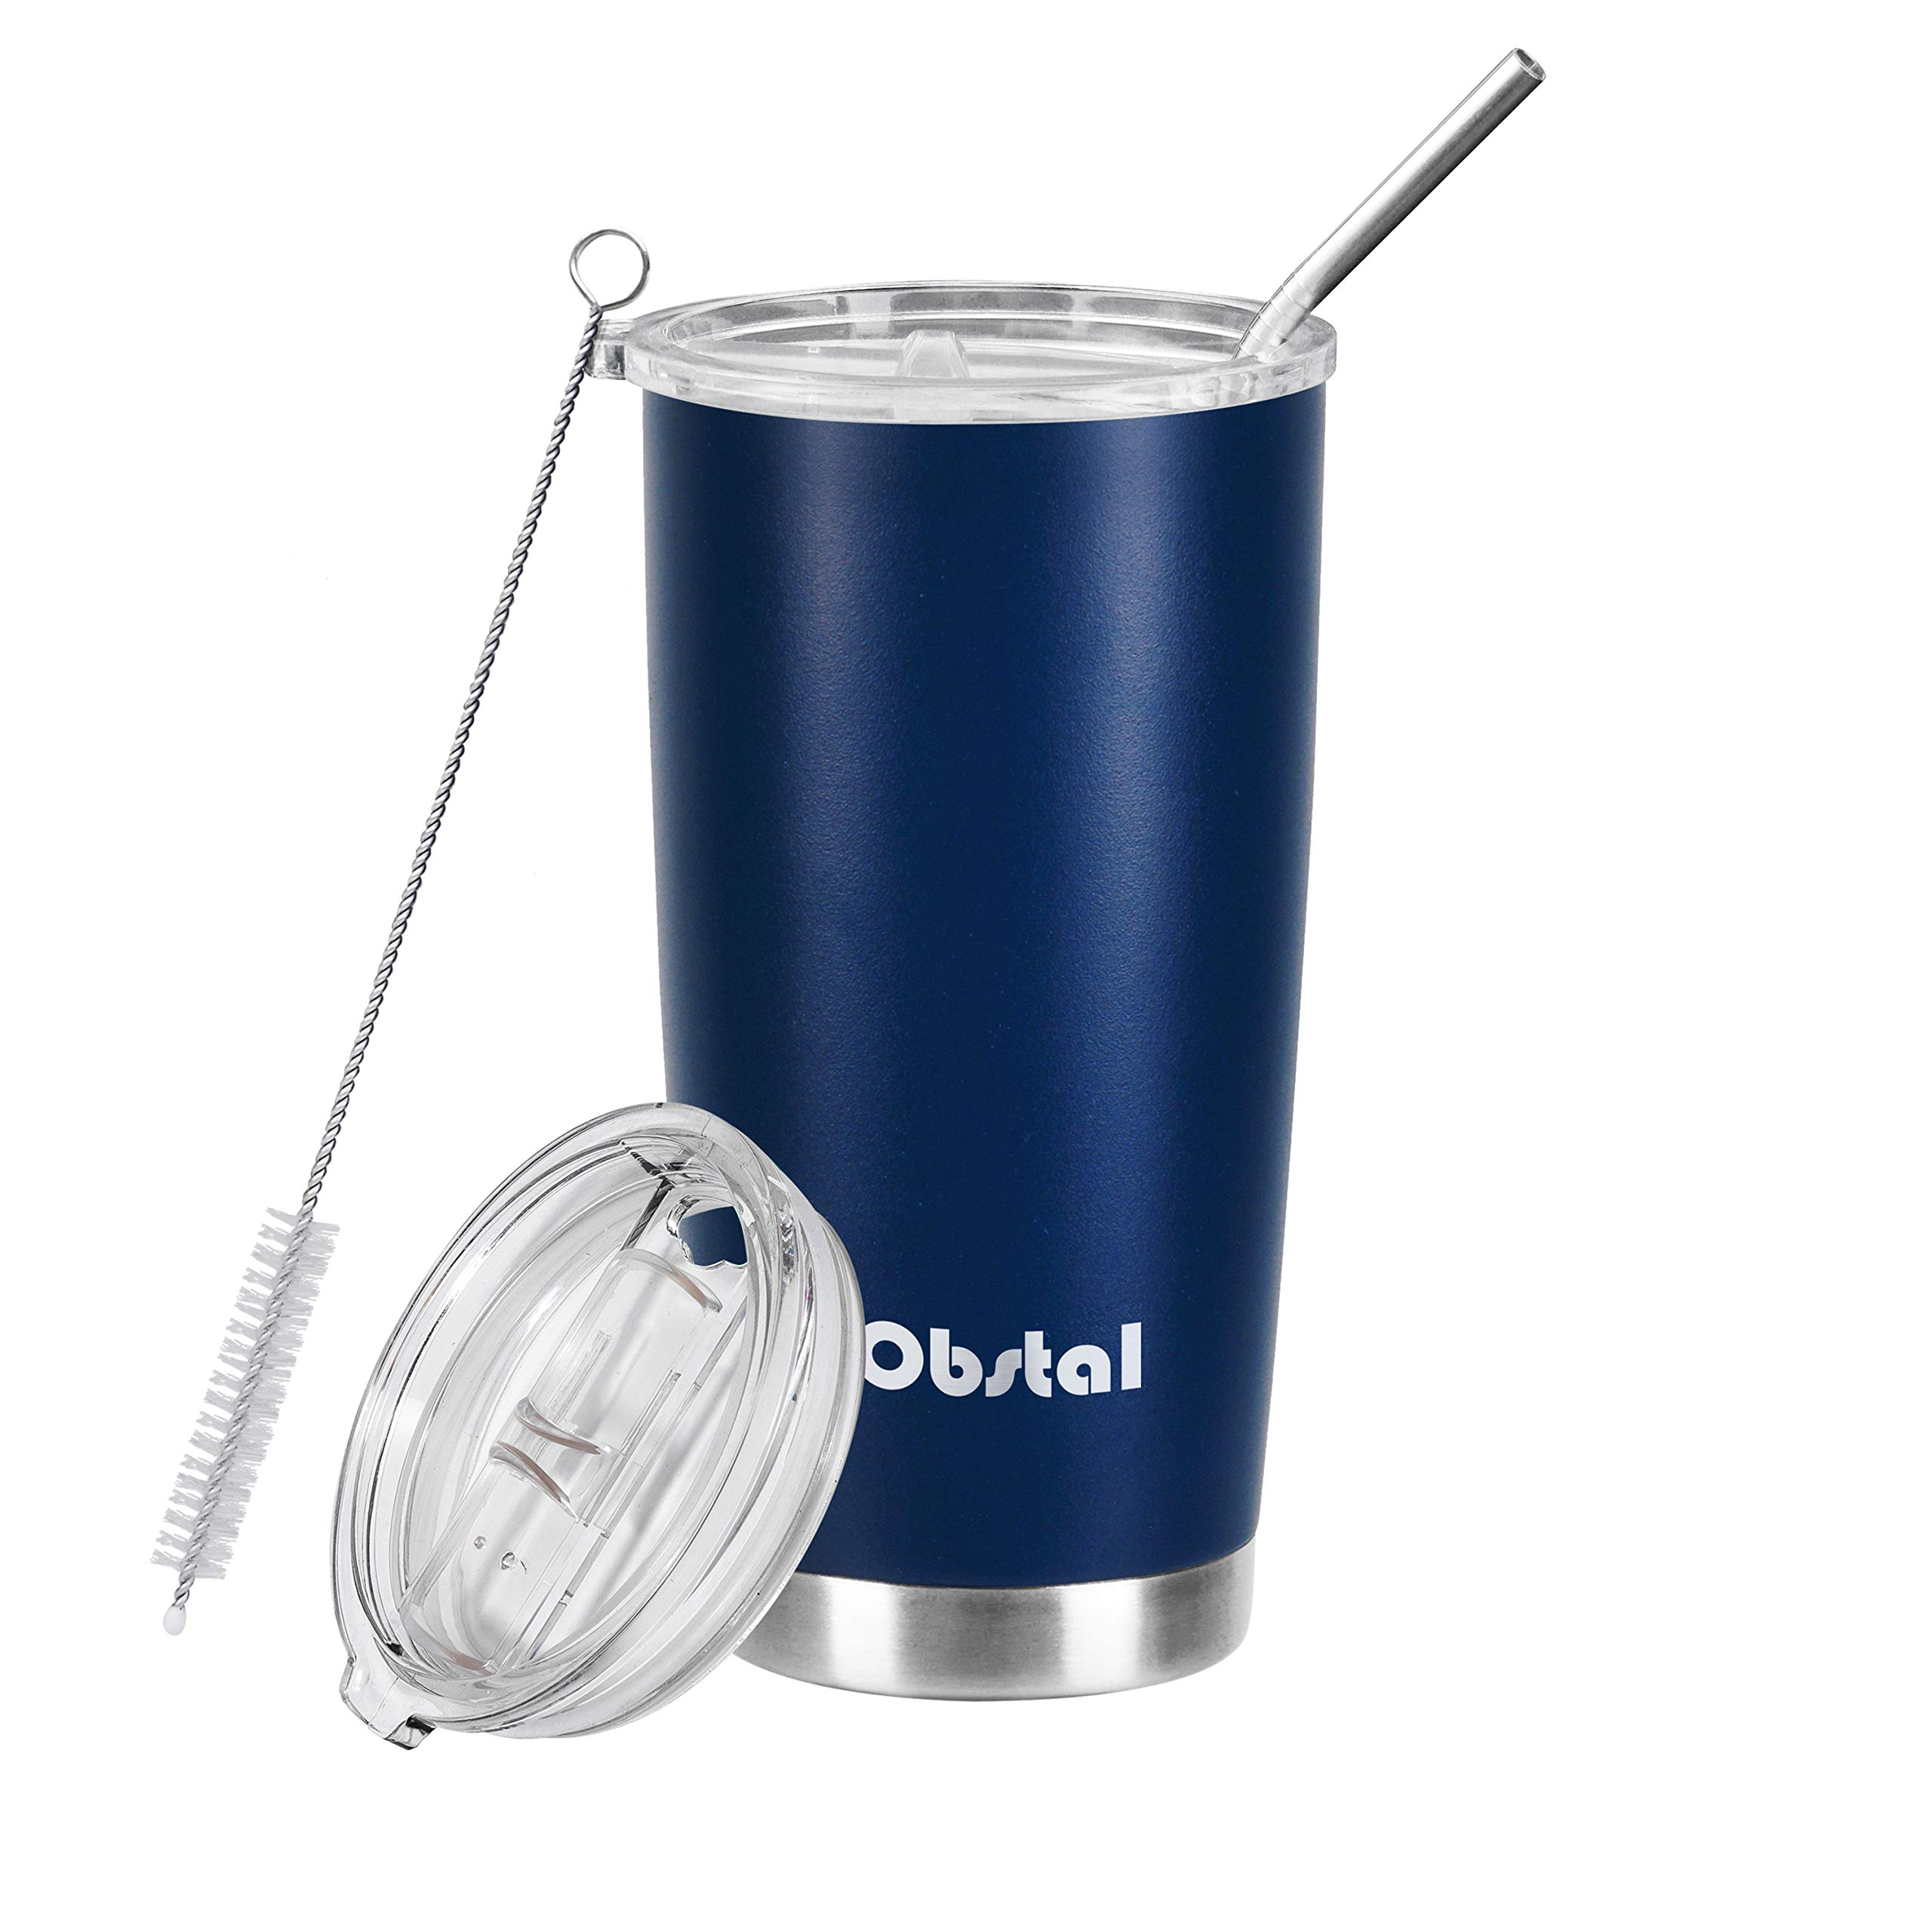 Obstal 20 oz Insulated Coffee Tumbler Stainless Steel Double Wall Vacuum with Stainless Straw, 2 Clear Lids & Cleaning Brush for Office and Gift, Navy, Powder Coated